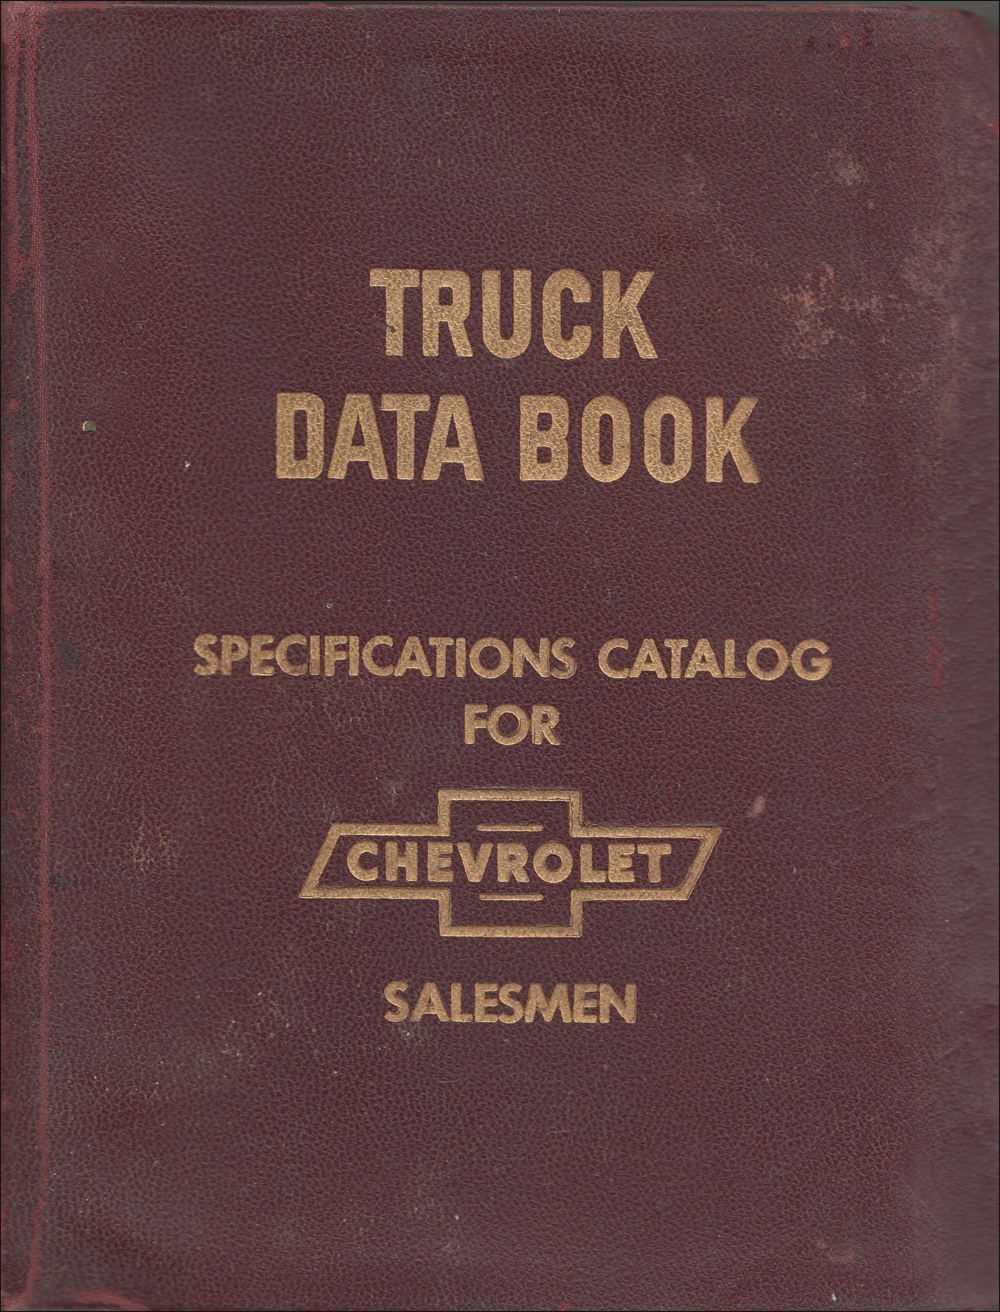 1959 Chevrolet Truck Data Book Original